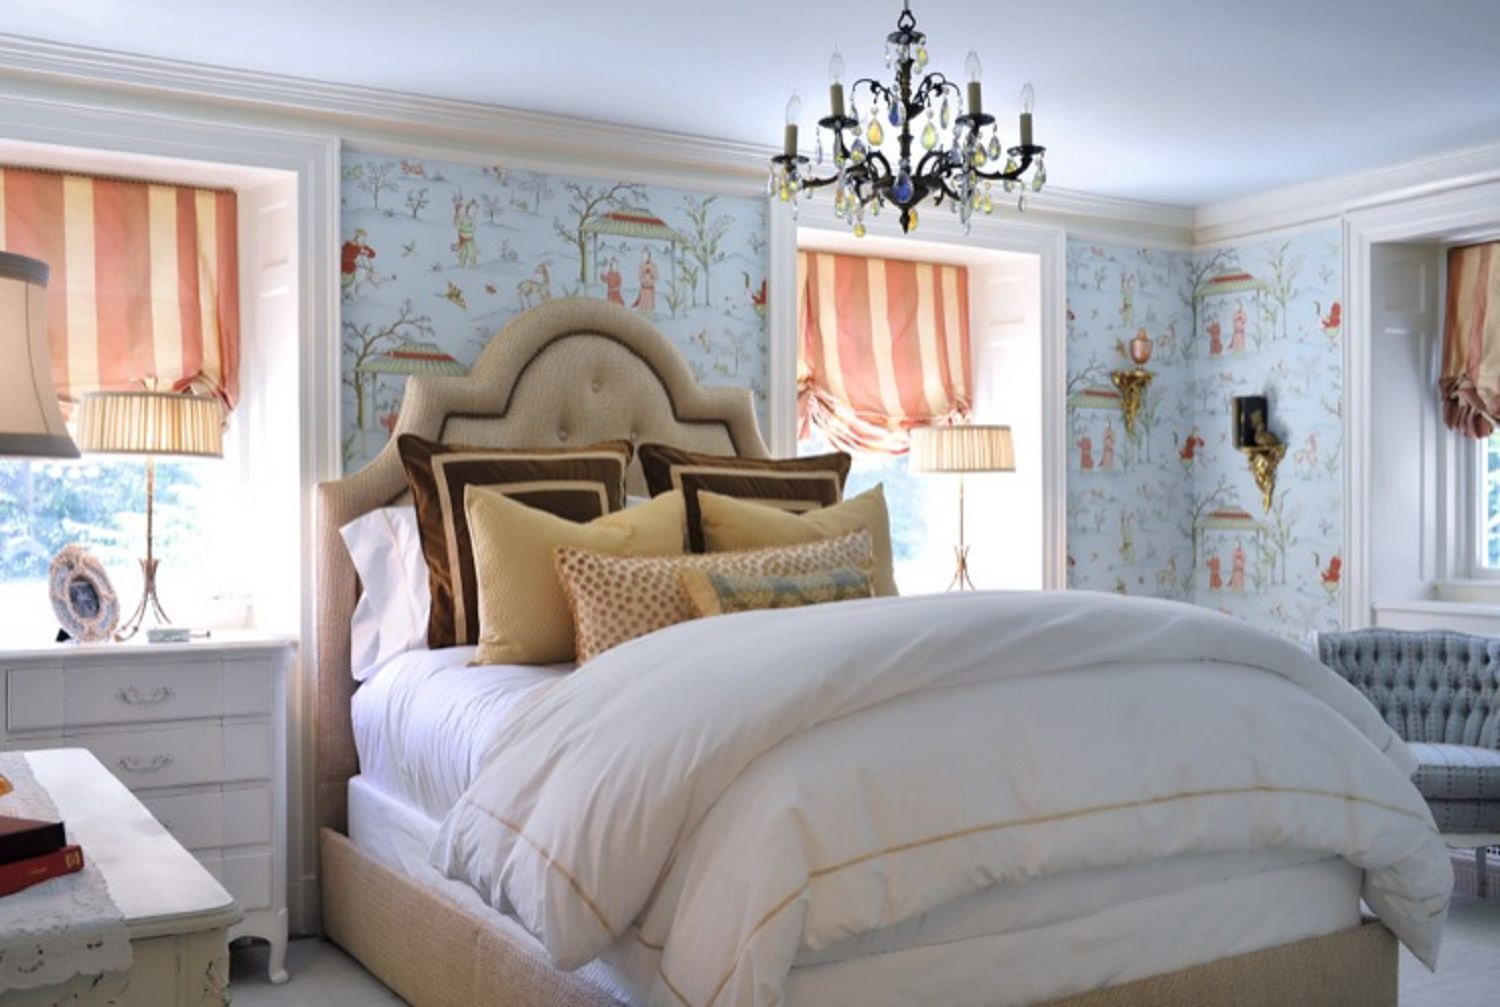 Ideas for French Country-Style Bedroom Decor